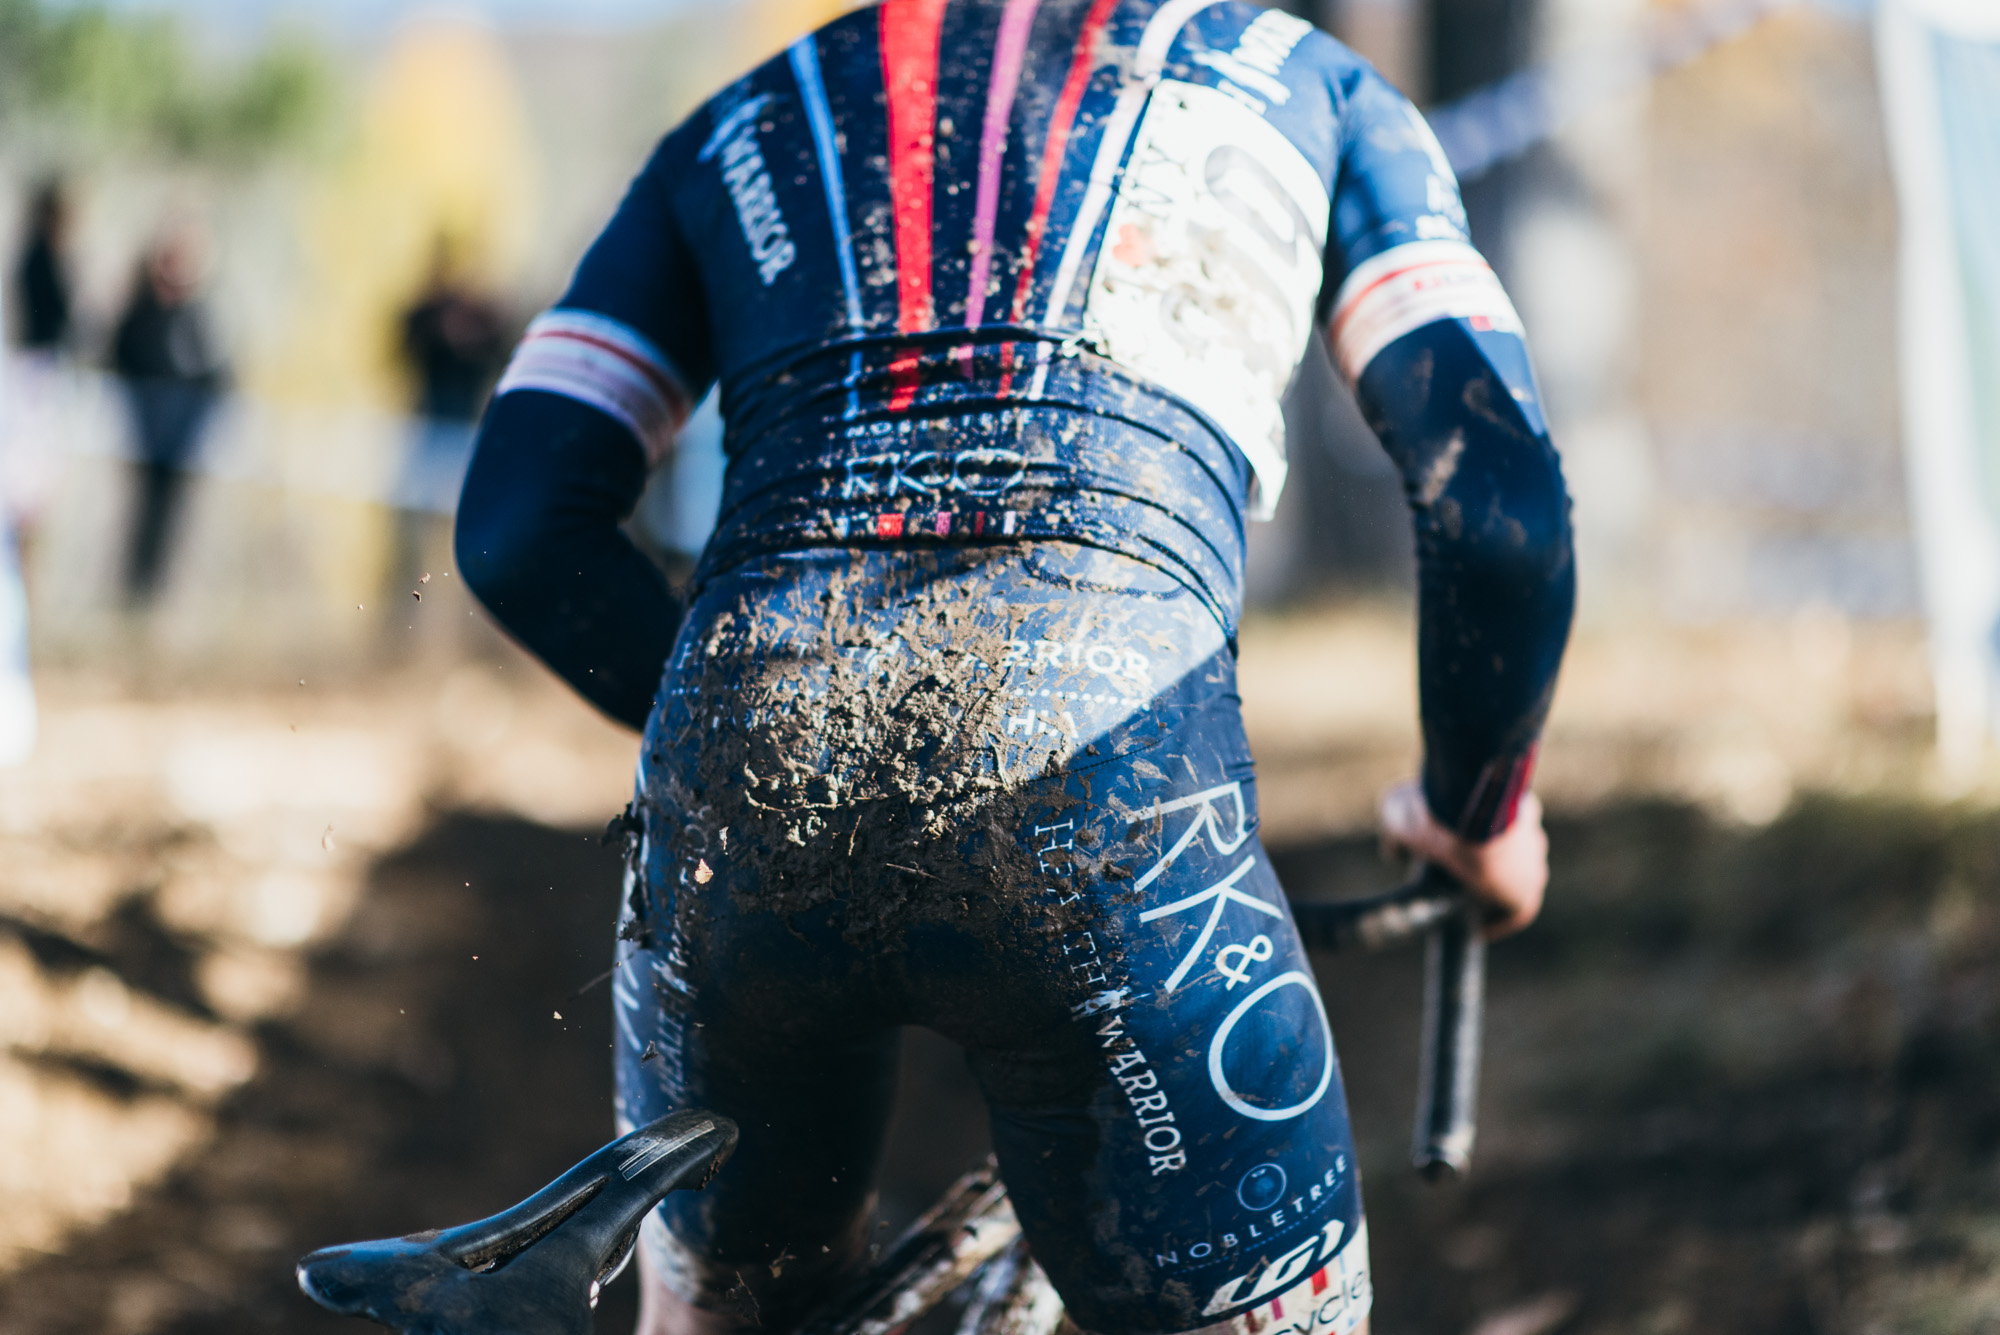 to-be-determined-supercross-cup-photo-rhetoric-1036.jpg